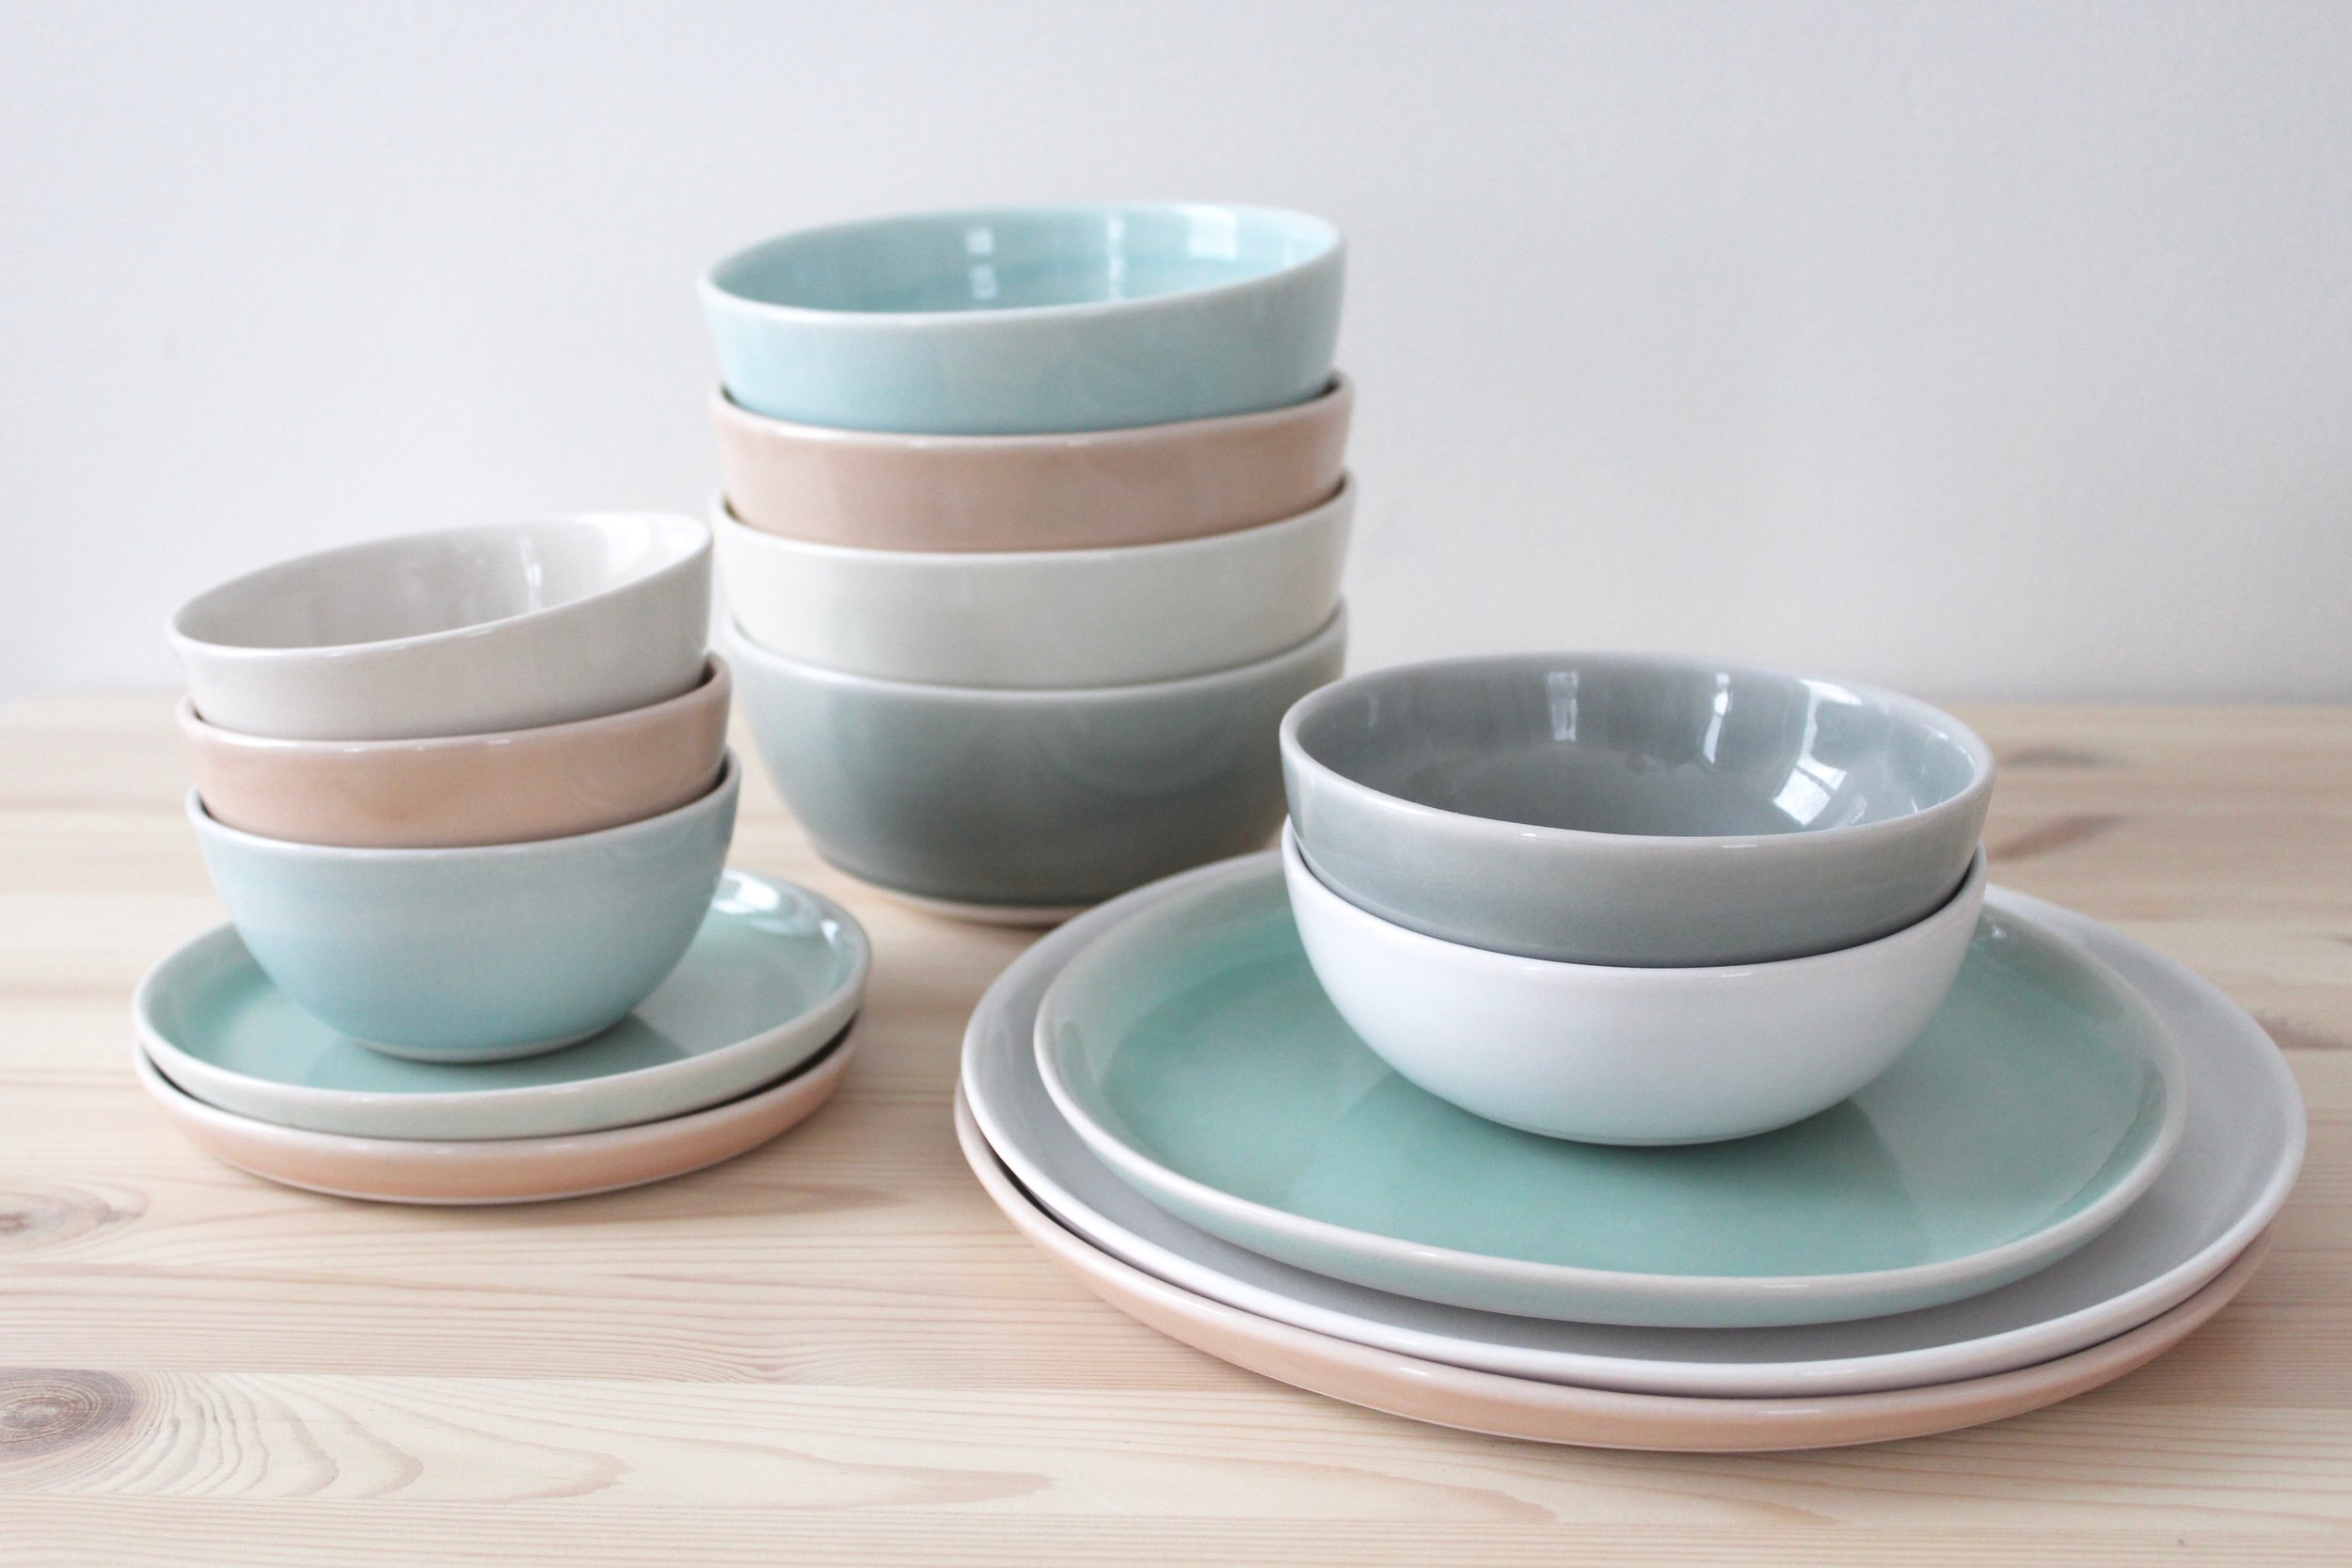 New plate sizes - Bread Plate and Lunch Plate - join the gang!